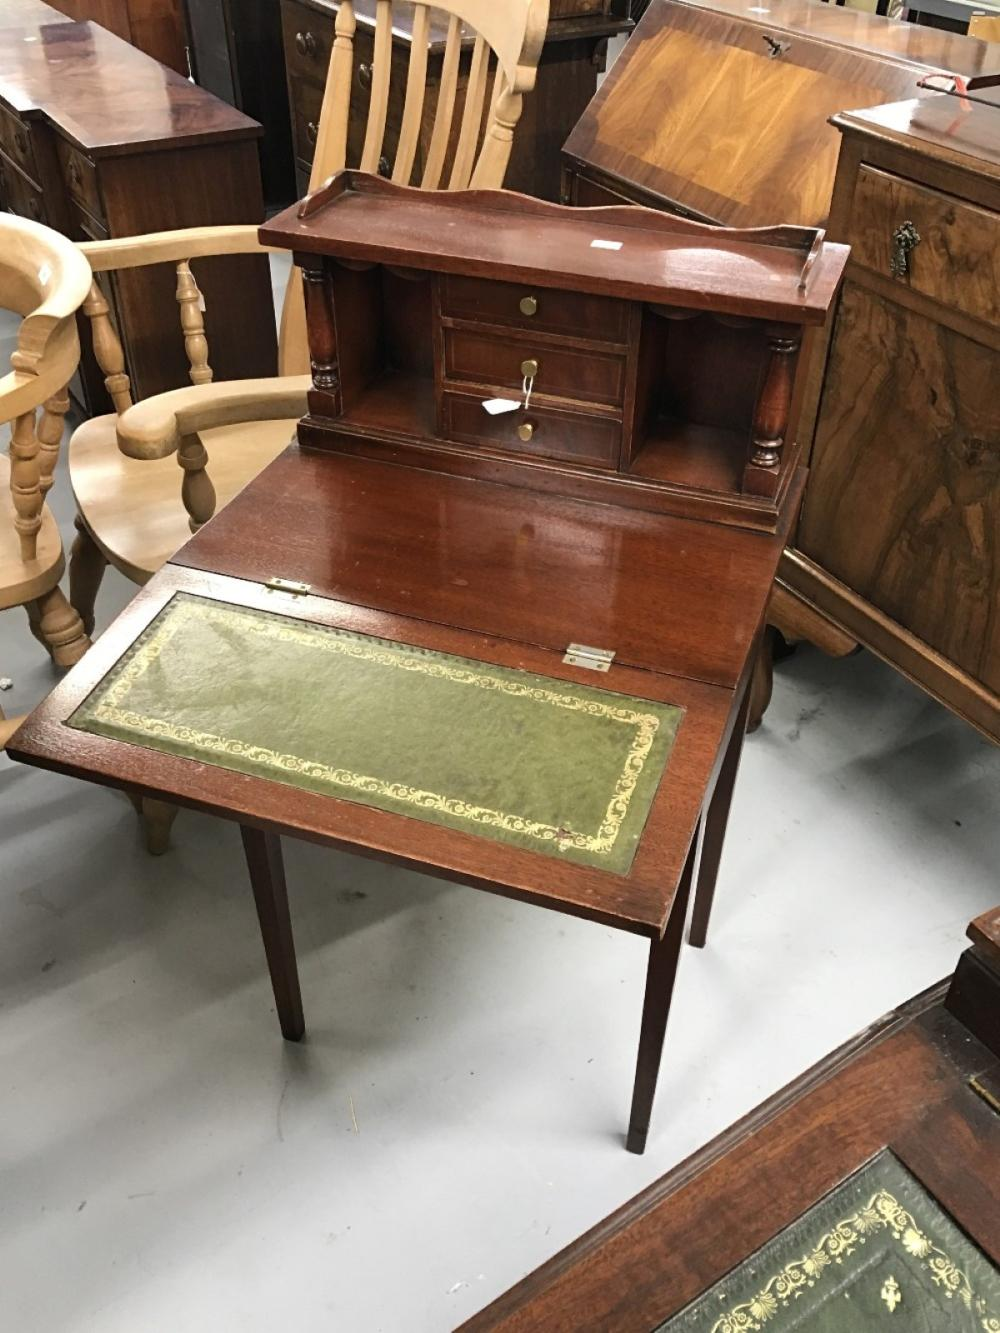 20th cent. Mahogany ladies desk. Pigeon holes and drawers above two drawer base and fold-out writing